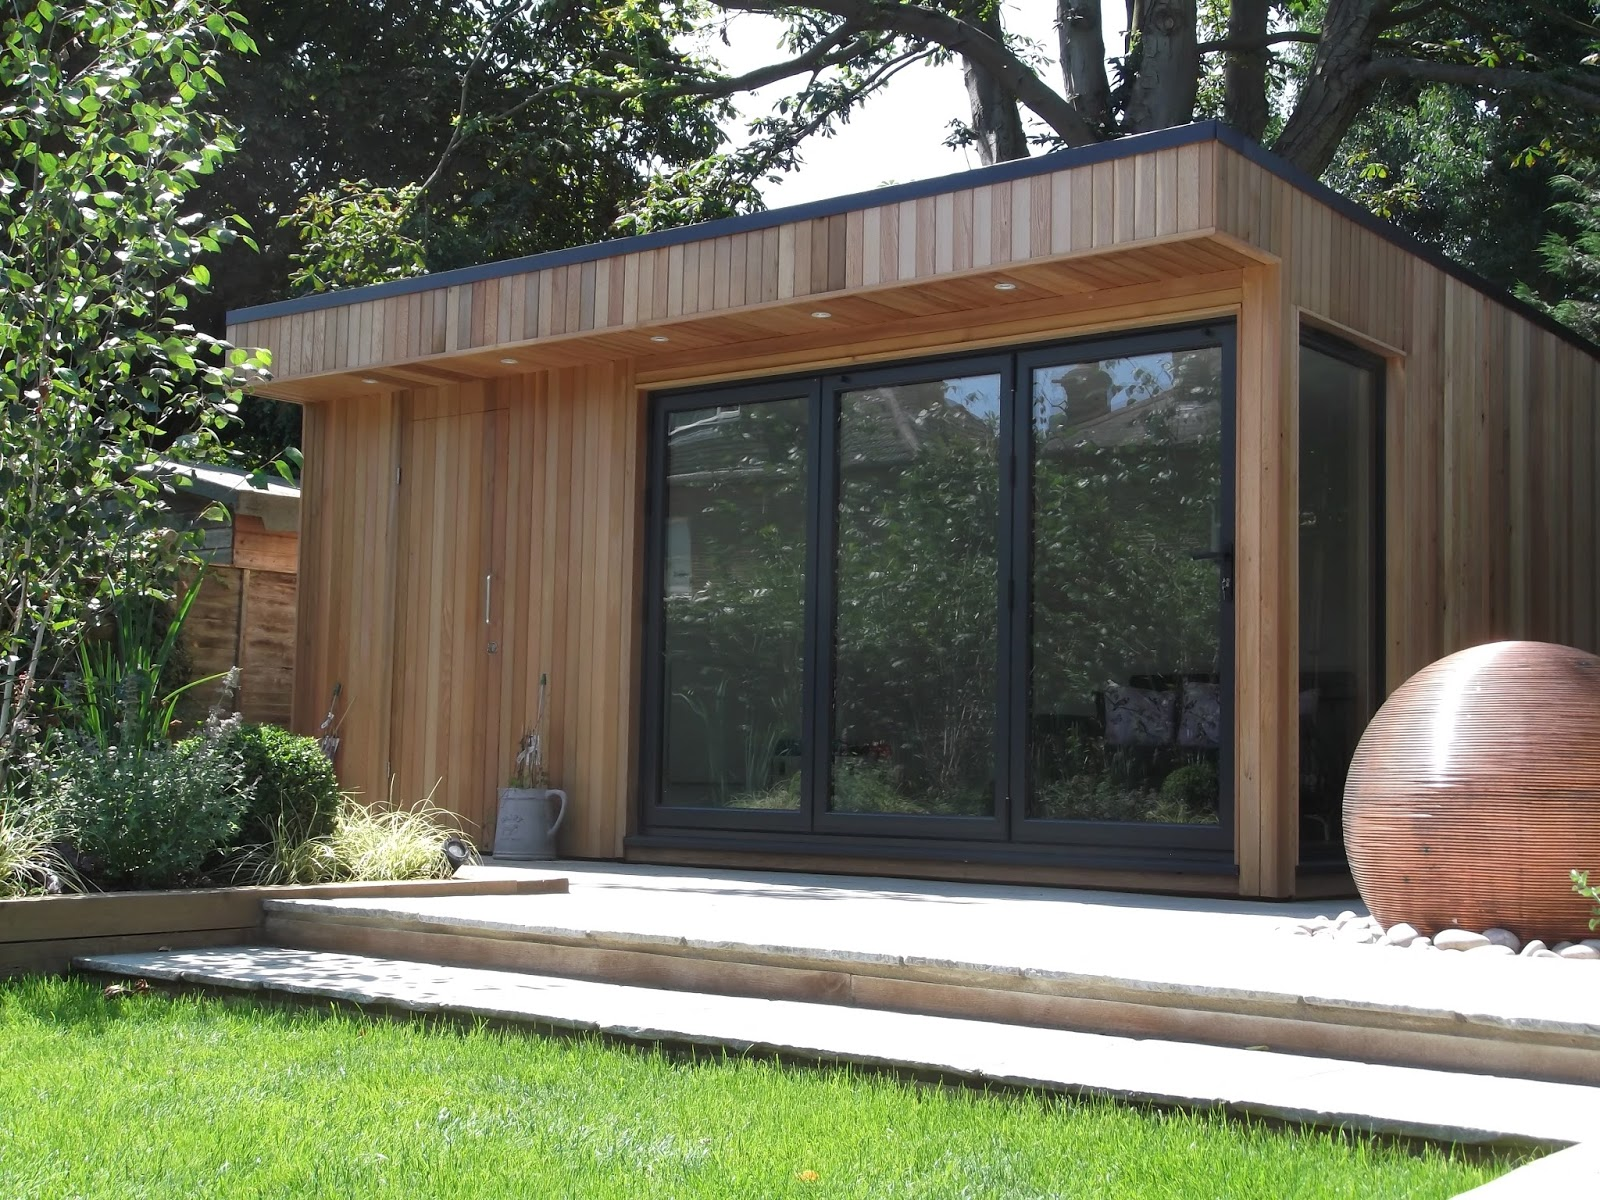 outdoor garden office office in my garden is a small independent garden room company based in calamaco brochure visit europe visit